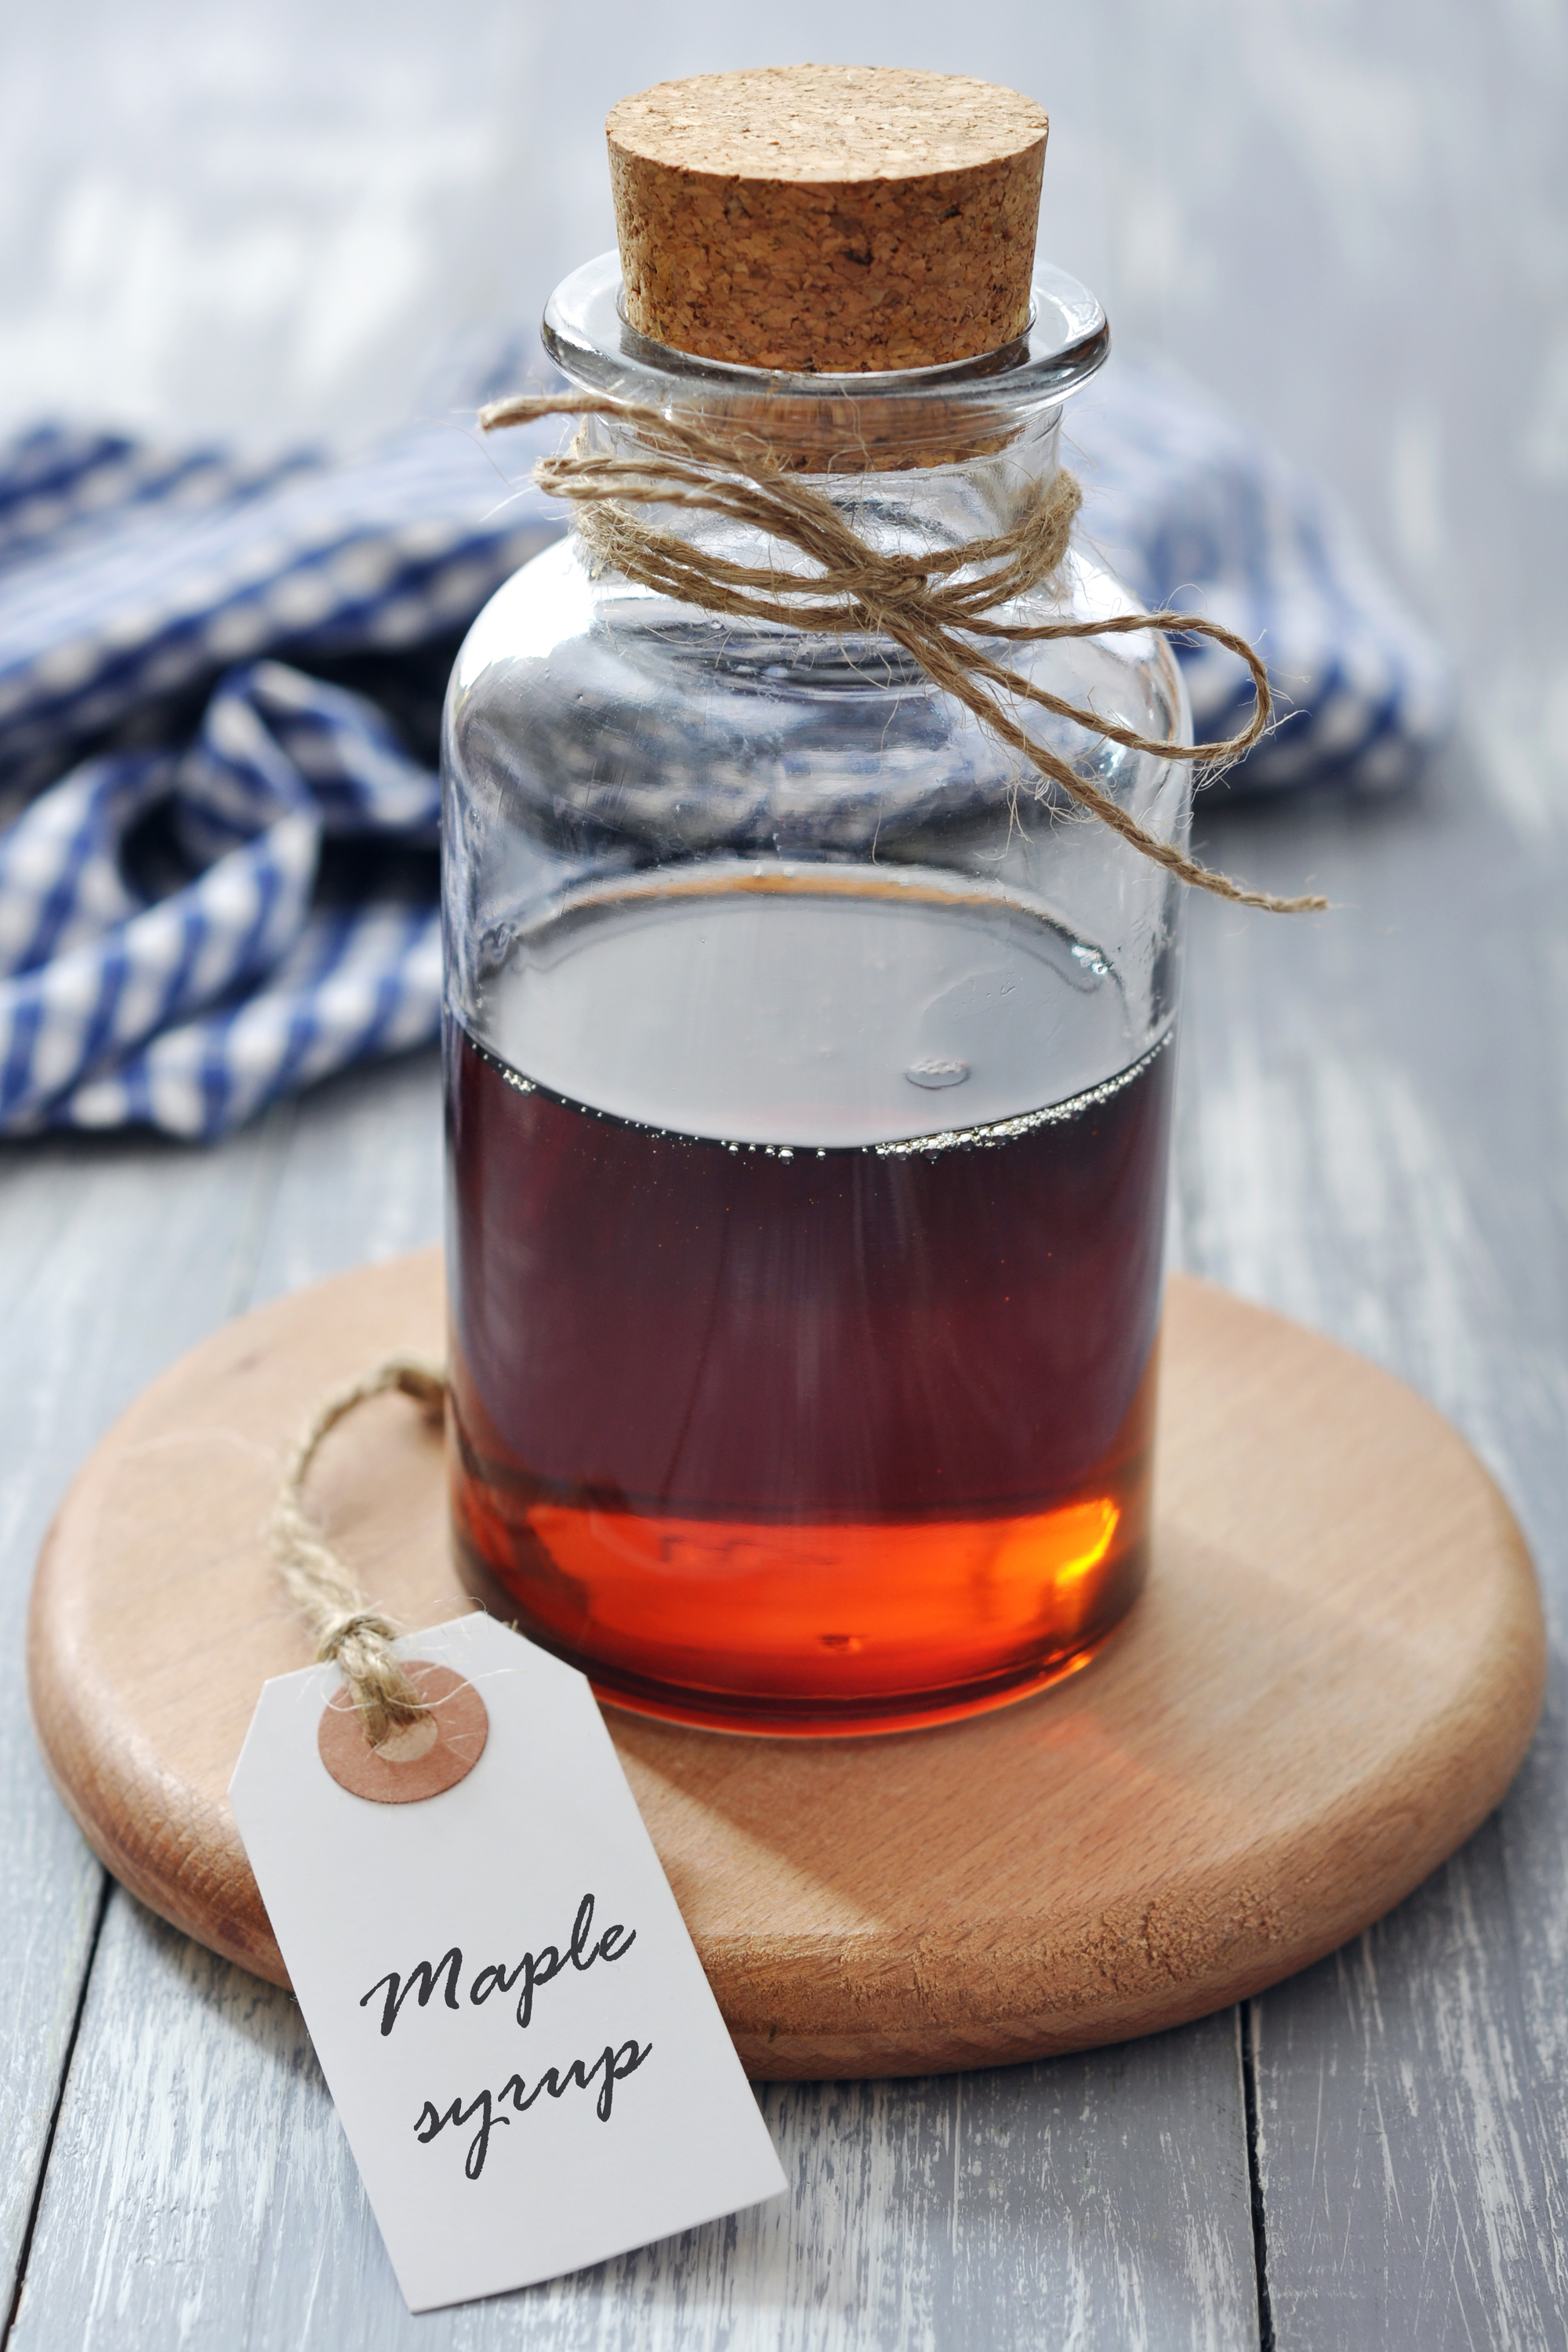 Maple syrup is a perfect for a winter wedding favor. For more ideas on winter wedding favors, read my post. Your guests will love them.